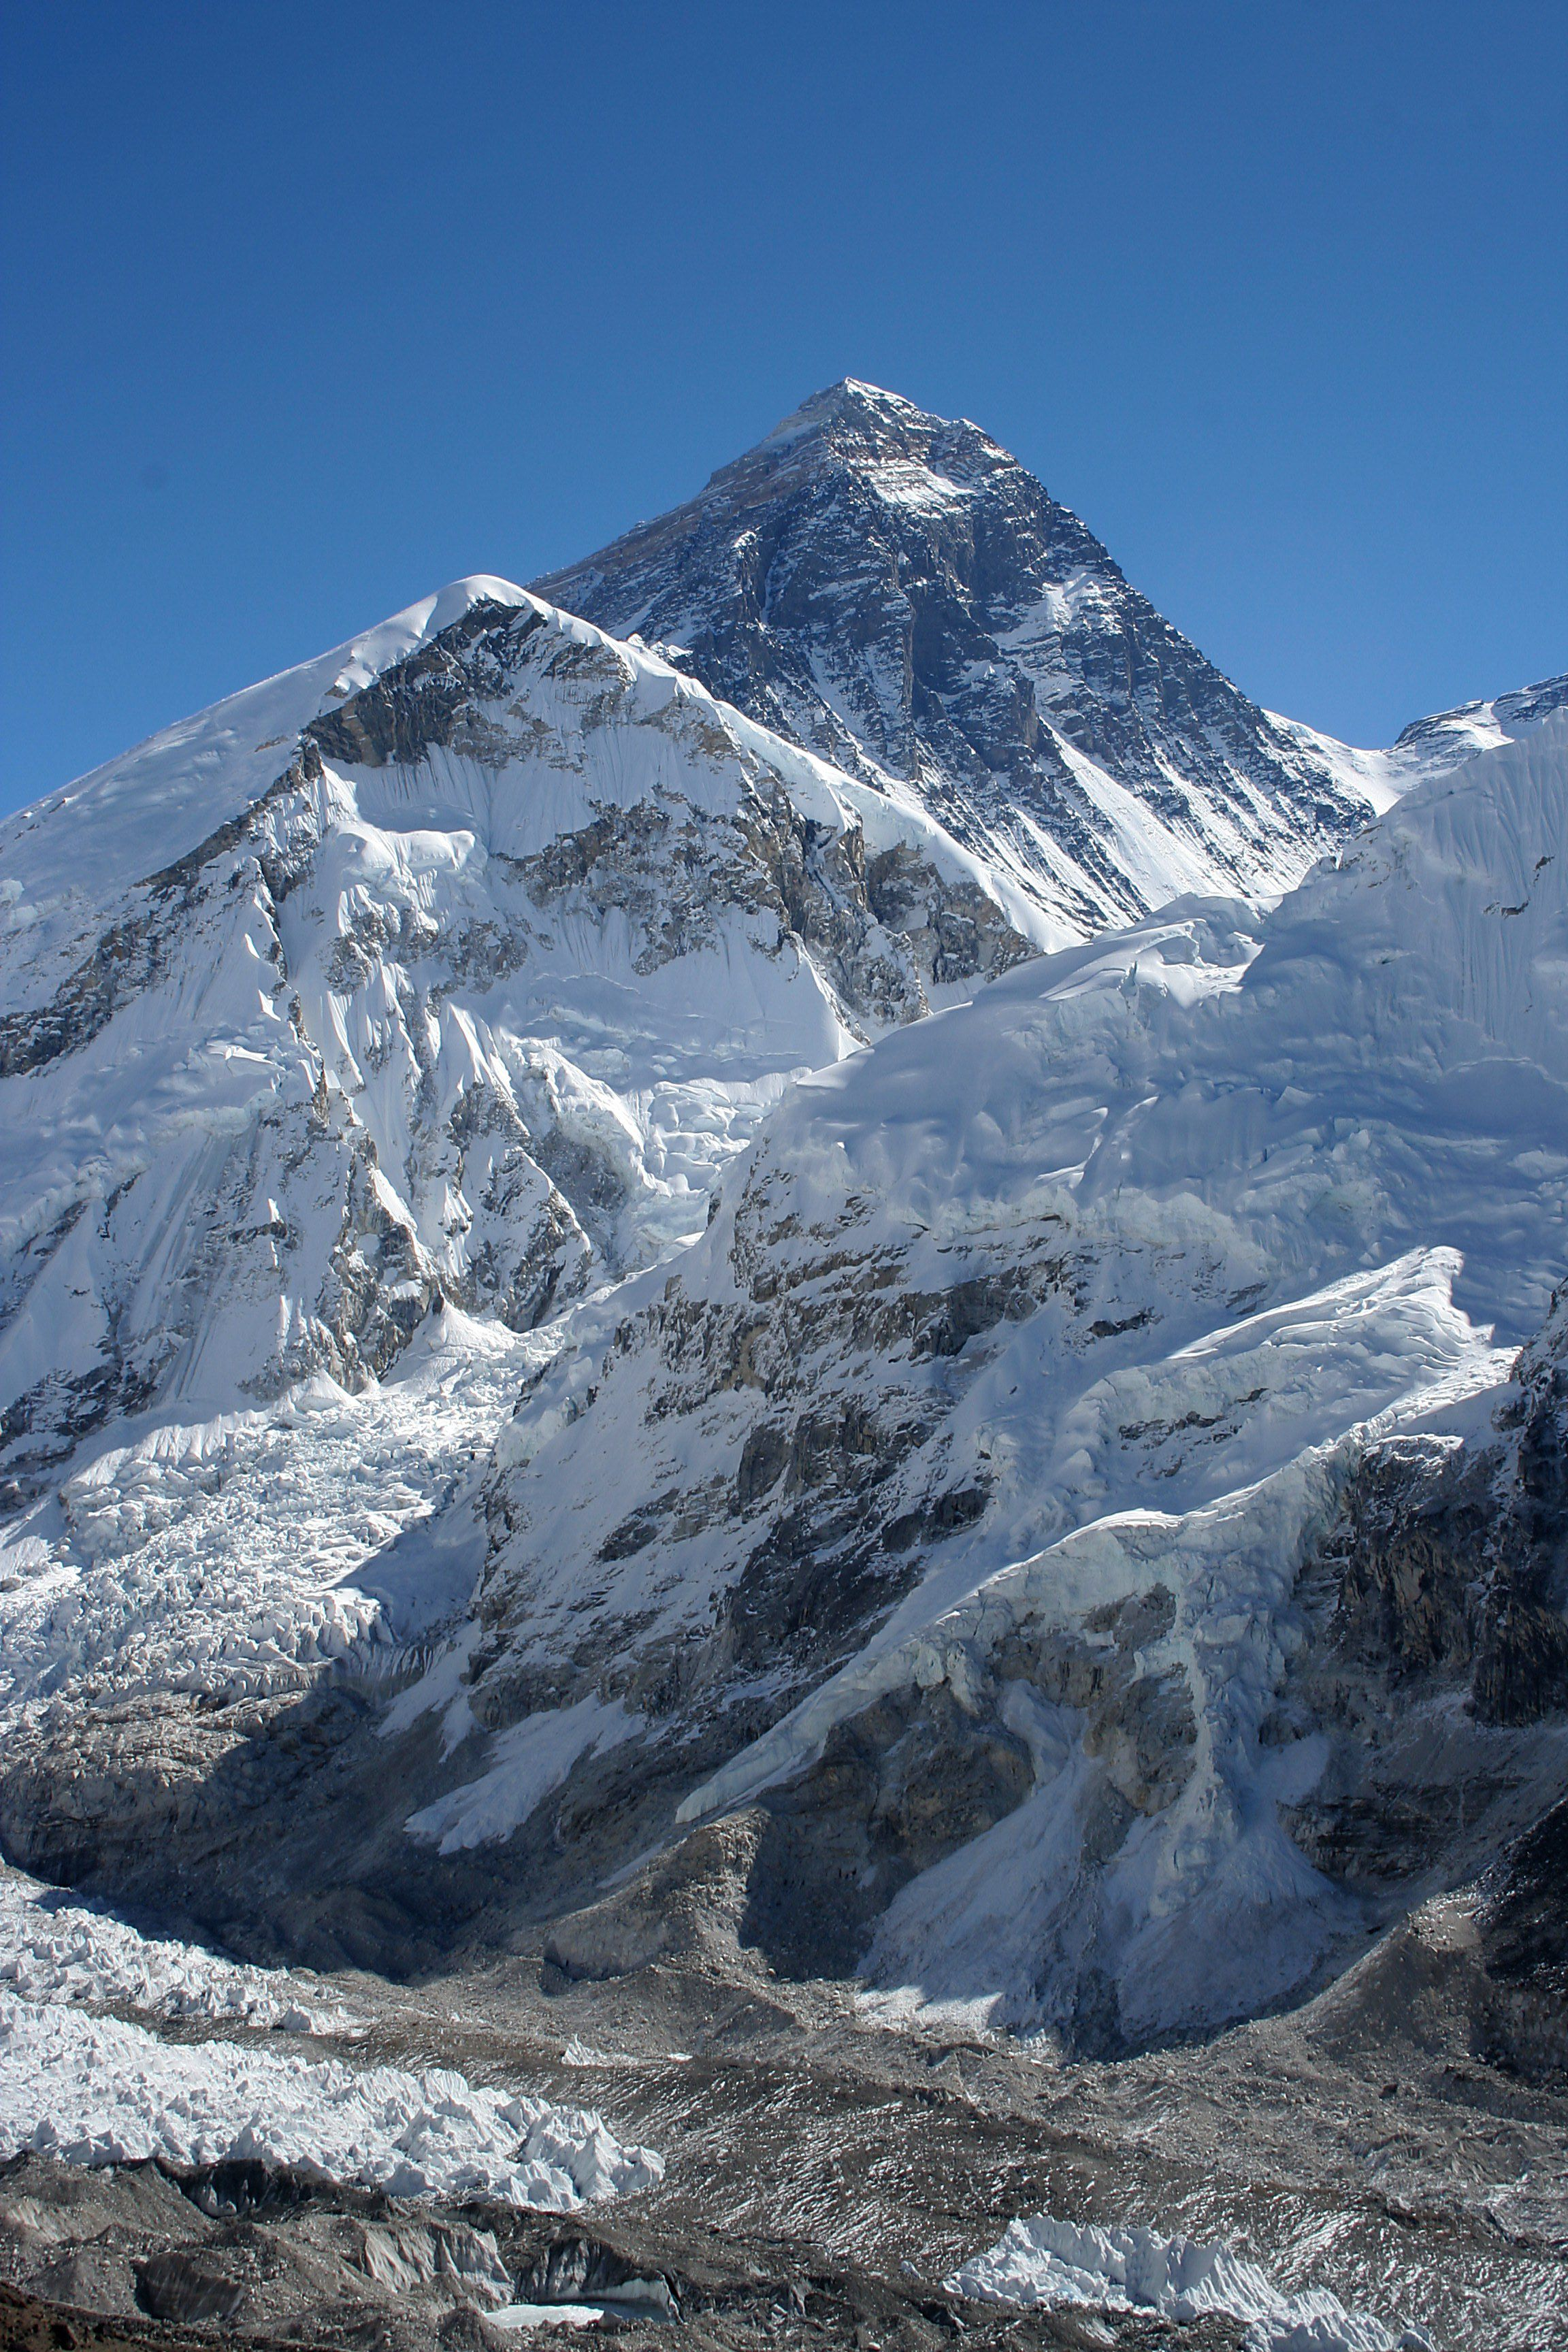 World's highest dump? Mount Everest is covered in tons of trash and dead bodies